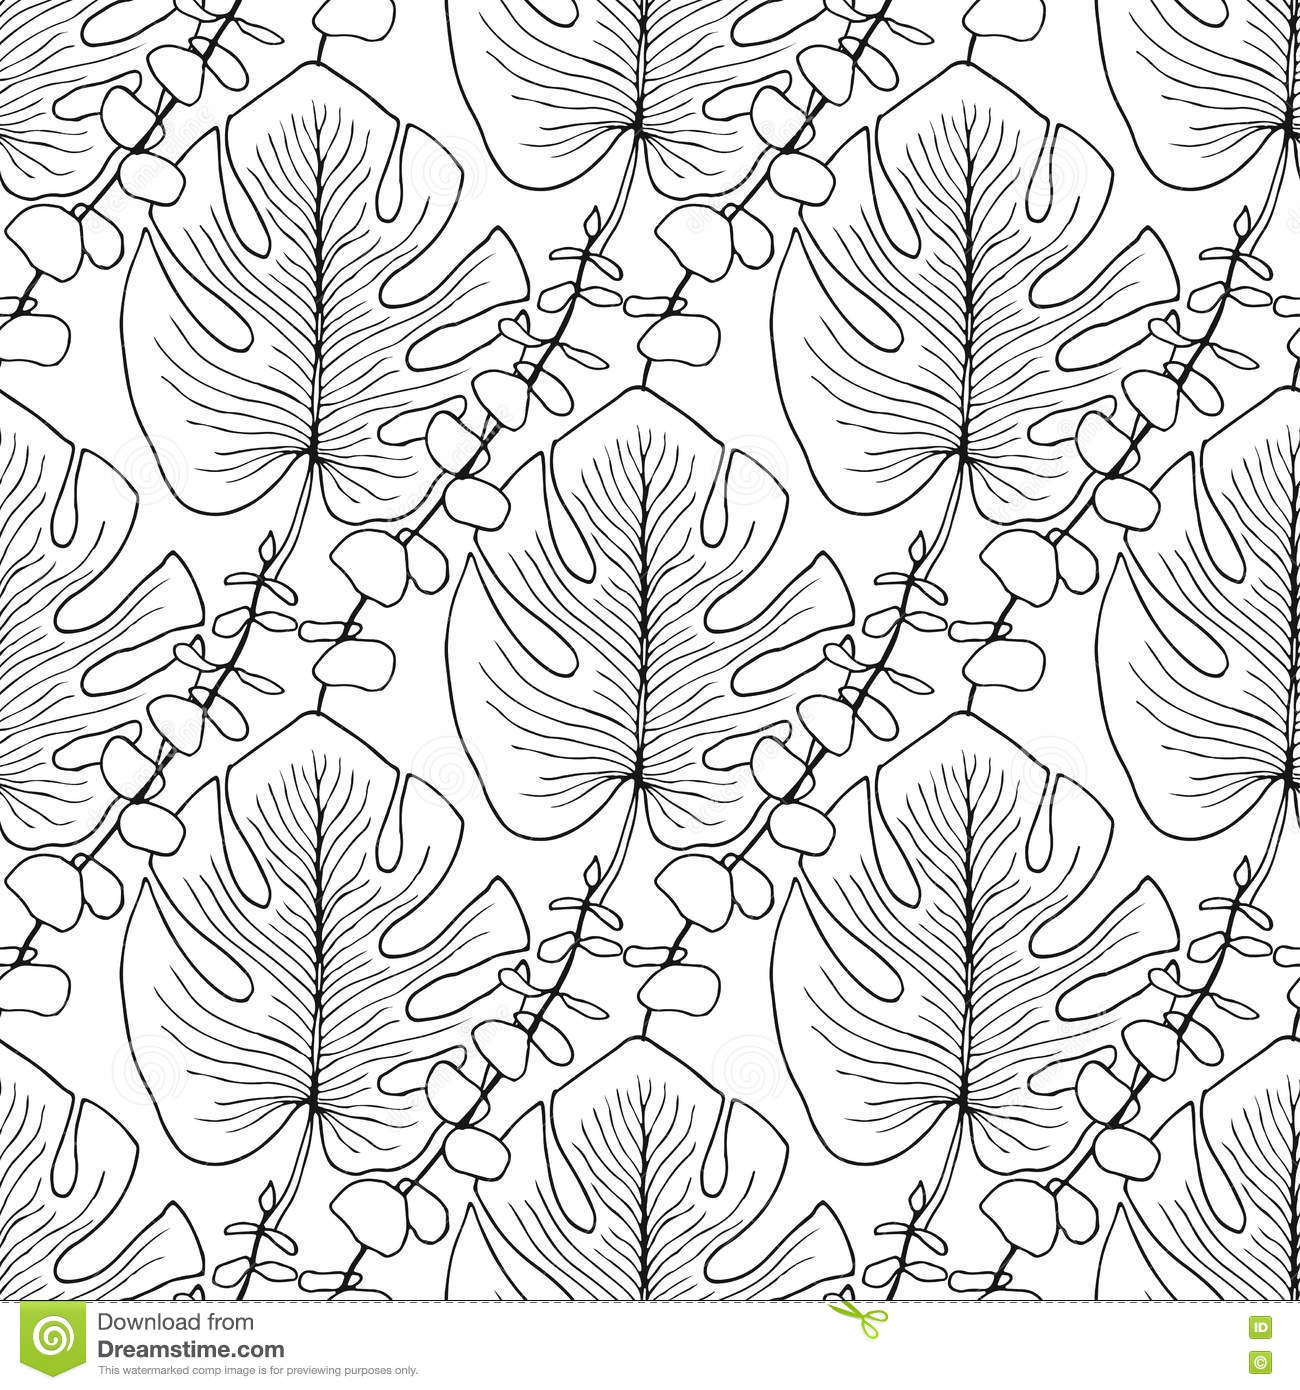 Download Tropical Leaves Vector Pattern Seamless For Adult Coloring Book Page Or Interior